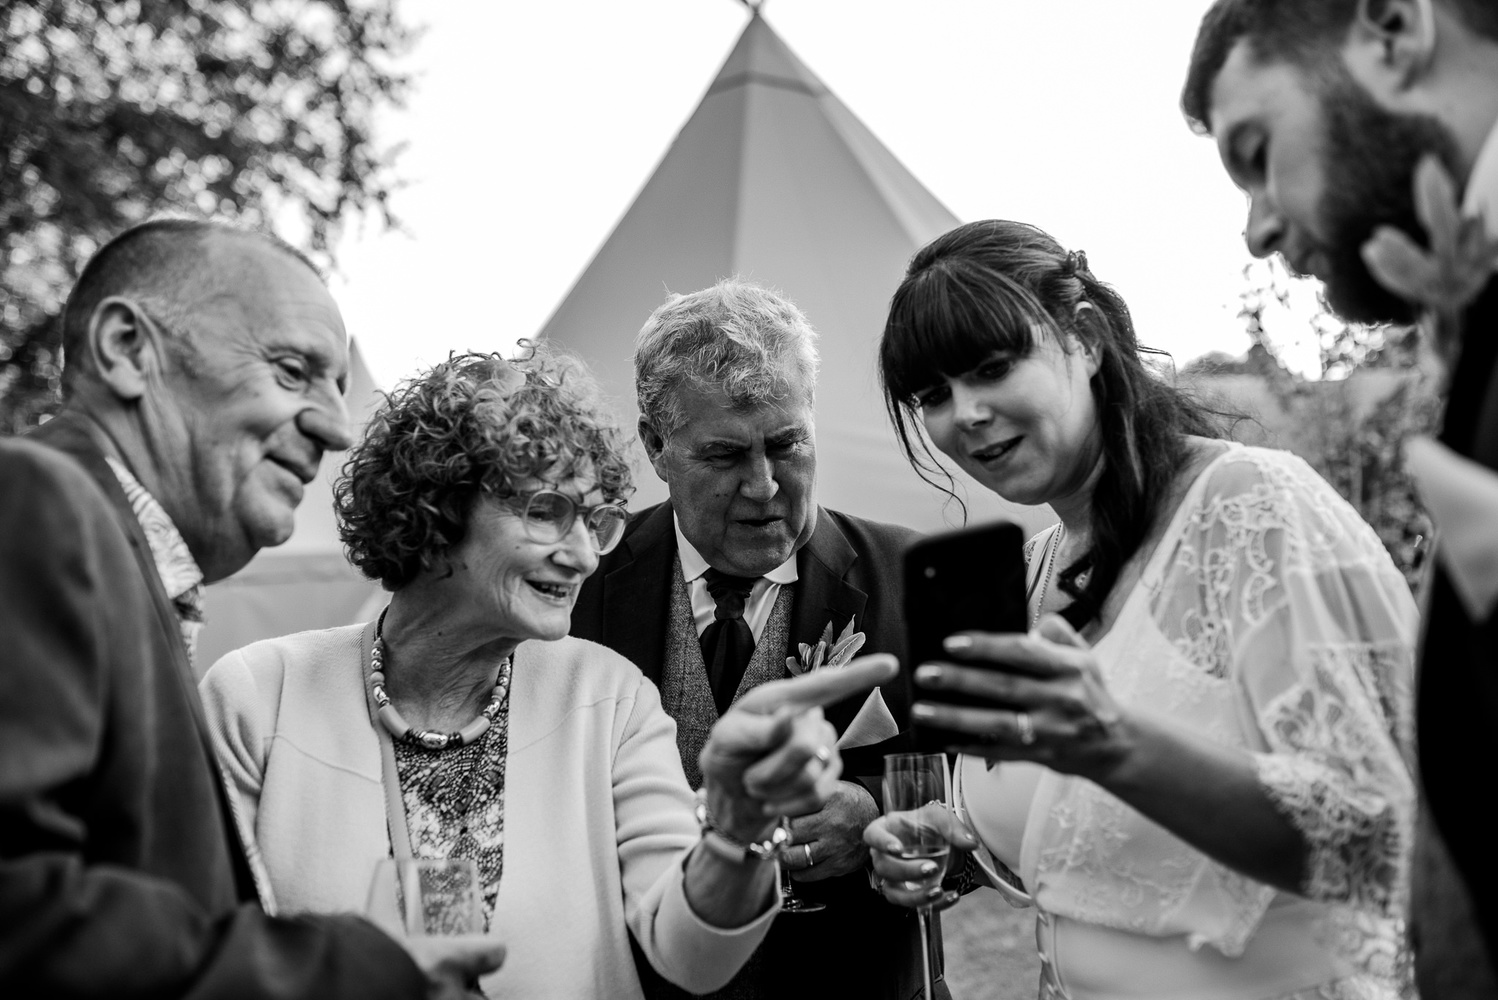 Wedding guests and the bride and groom looking at a phone